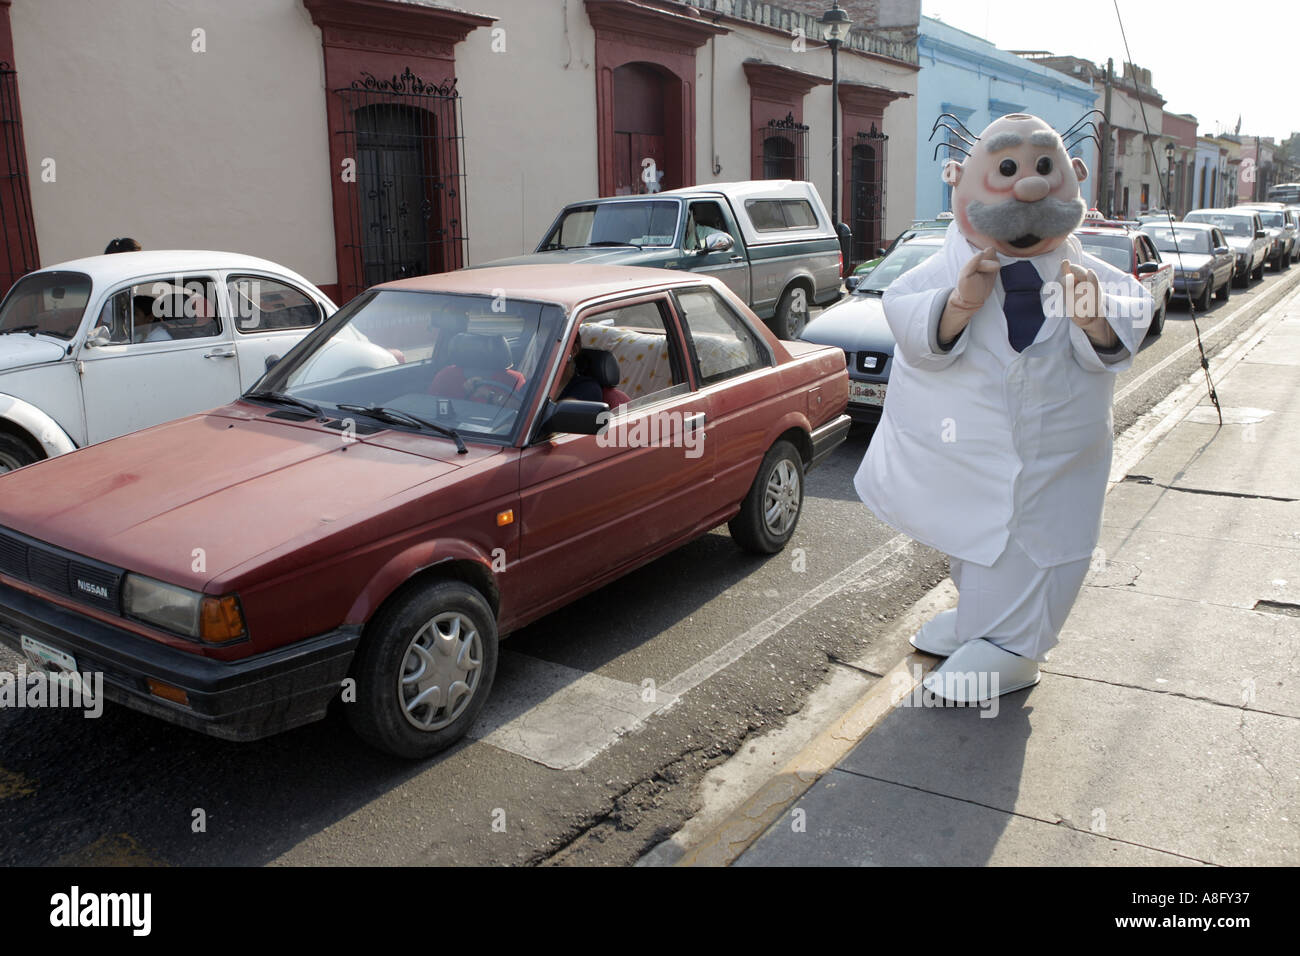 A person dressed as a cartoon character waves to cars and pedestrian as part of a promotion for a pharmacy in Oaxaca Stock Photo